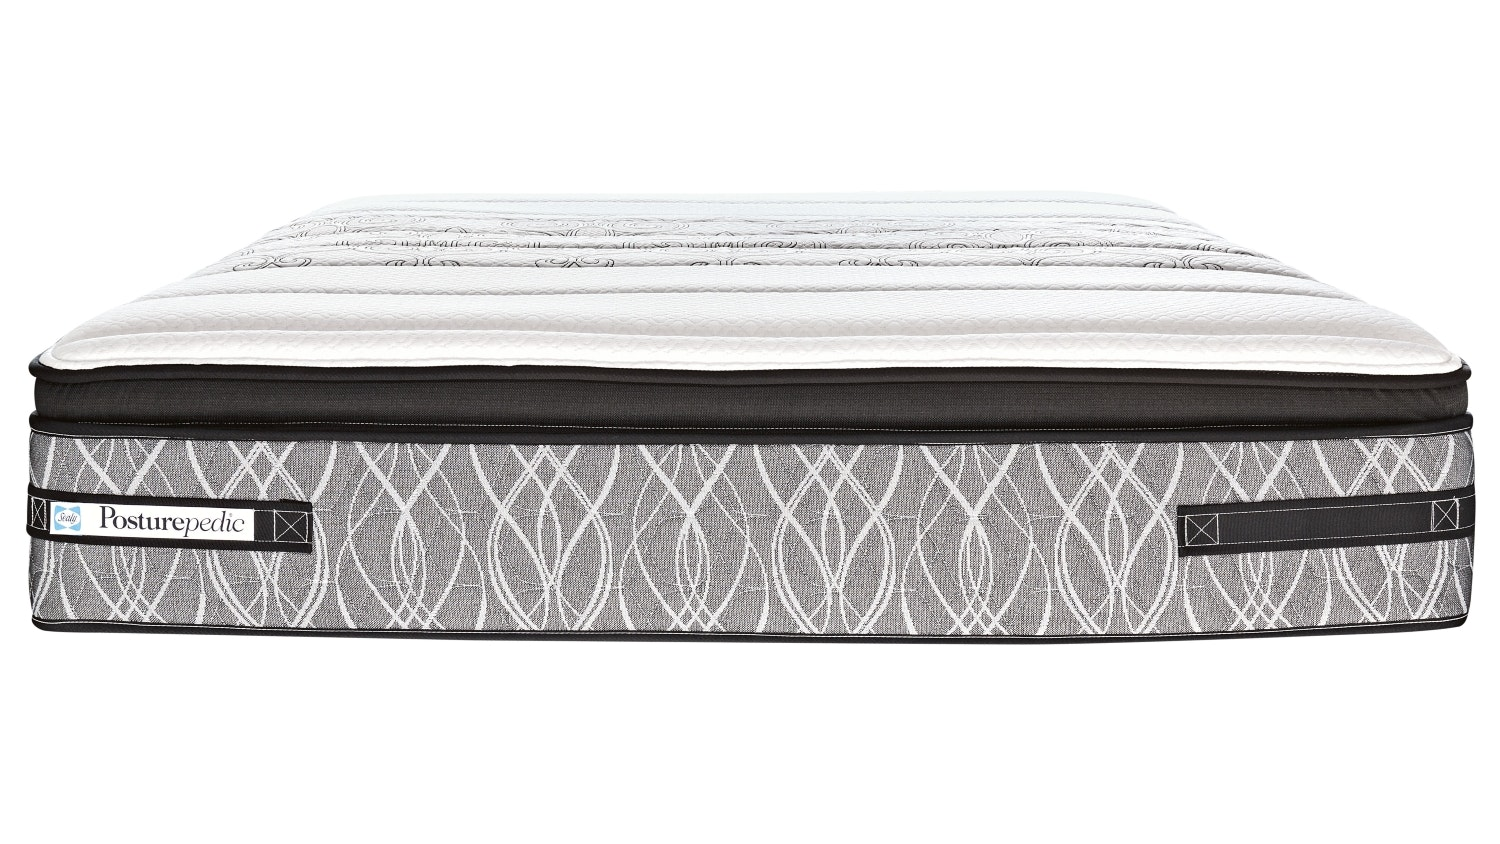 Sealy Posturepedic Enhance Hybrid Luxor Plush Mattress